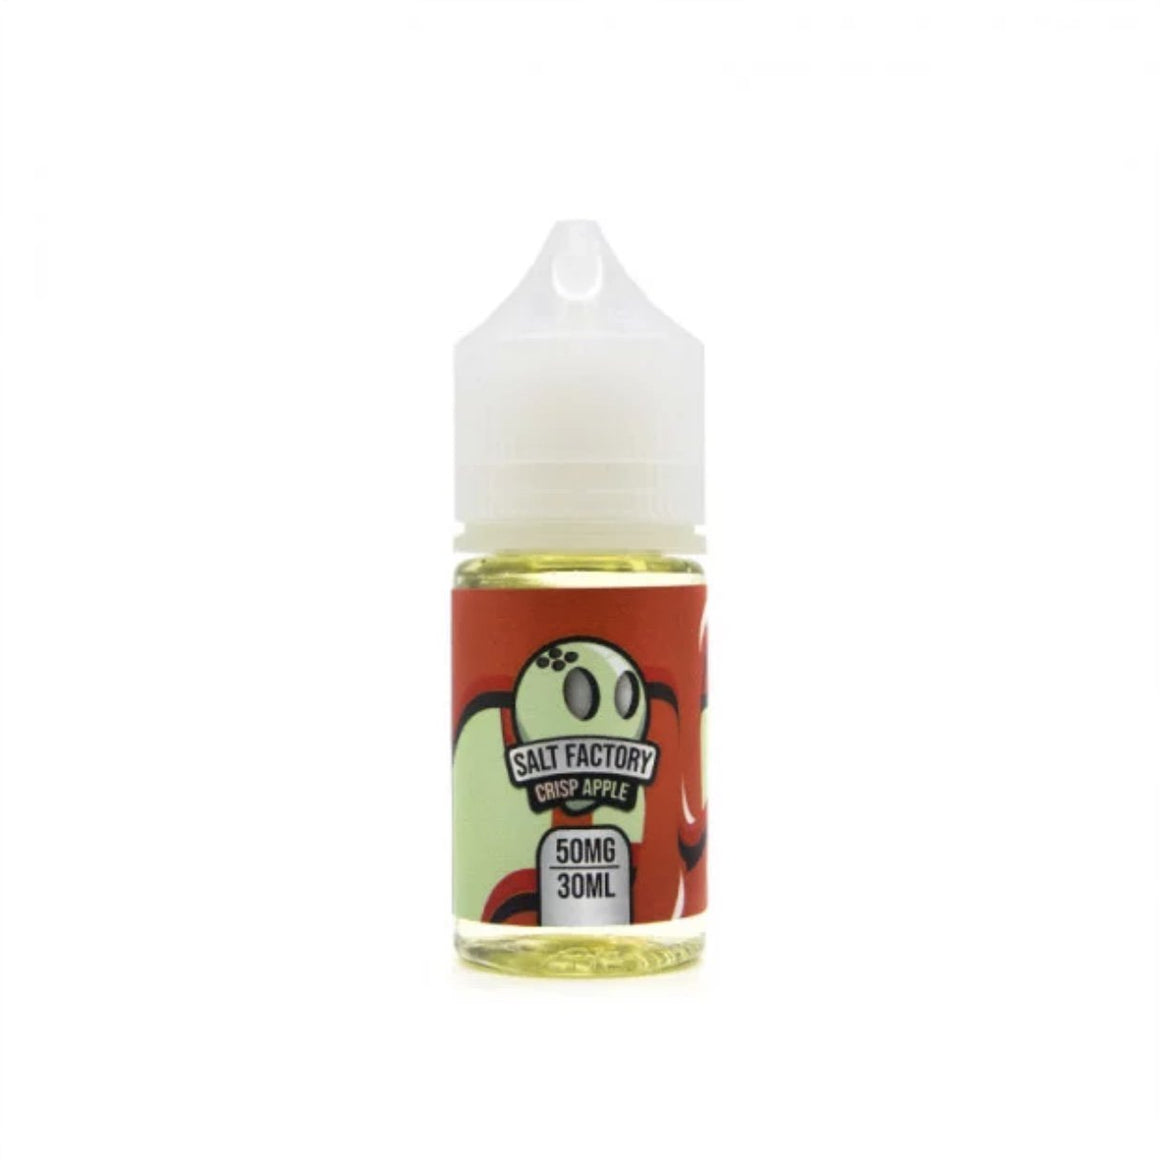 Air Factory E-Liquid Juice Salt Factory Crisp Apple